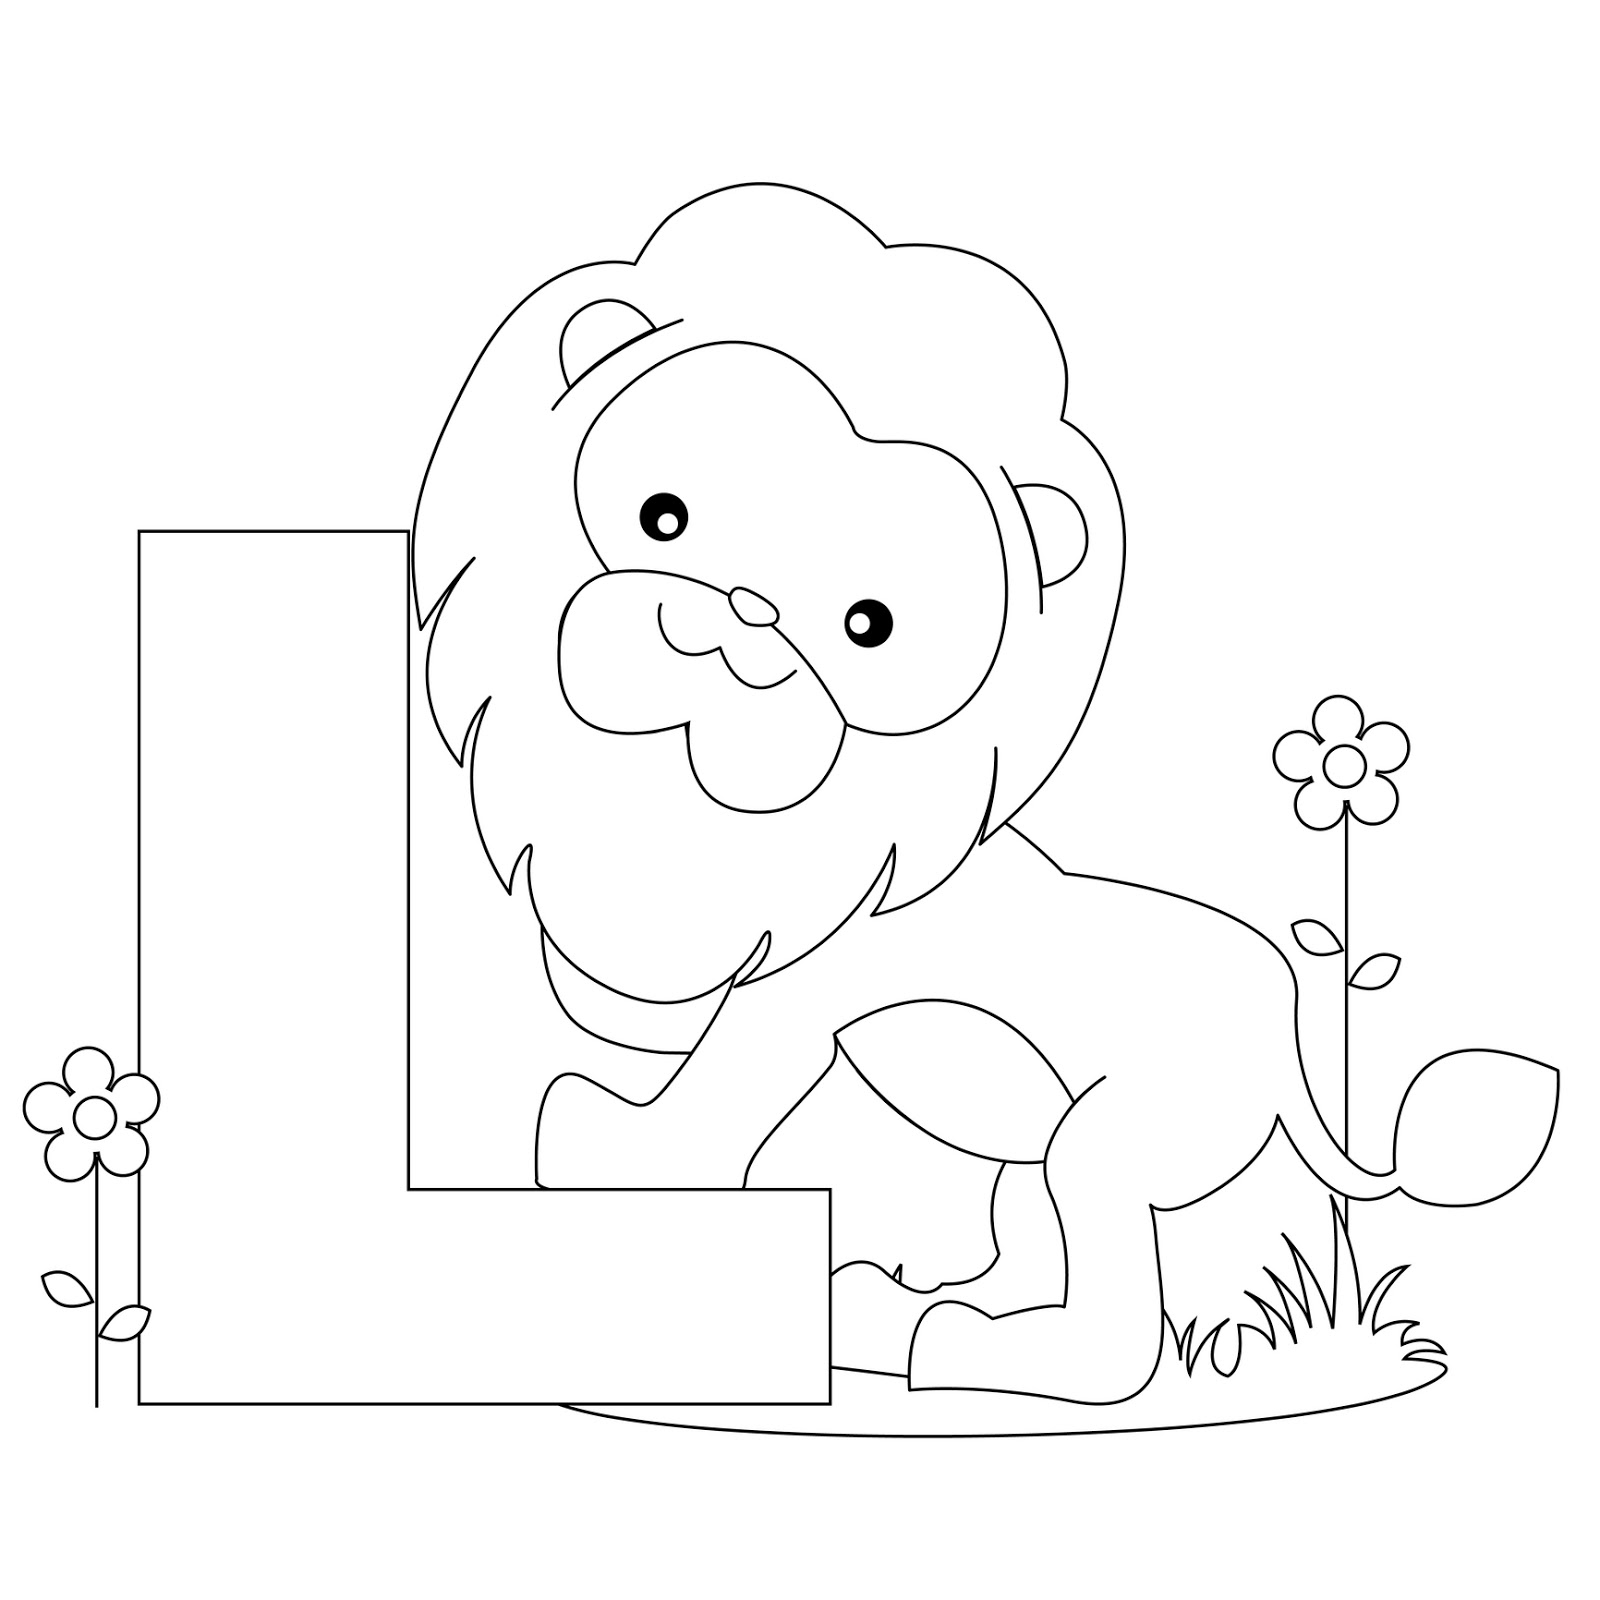 coloring abc draw abc coloring pages coloring pages to download and print draw coloring abc